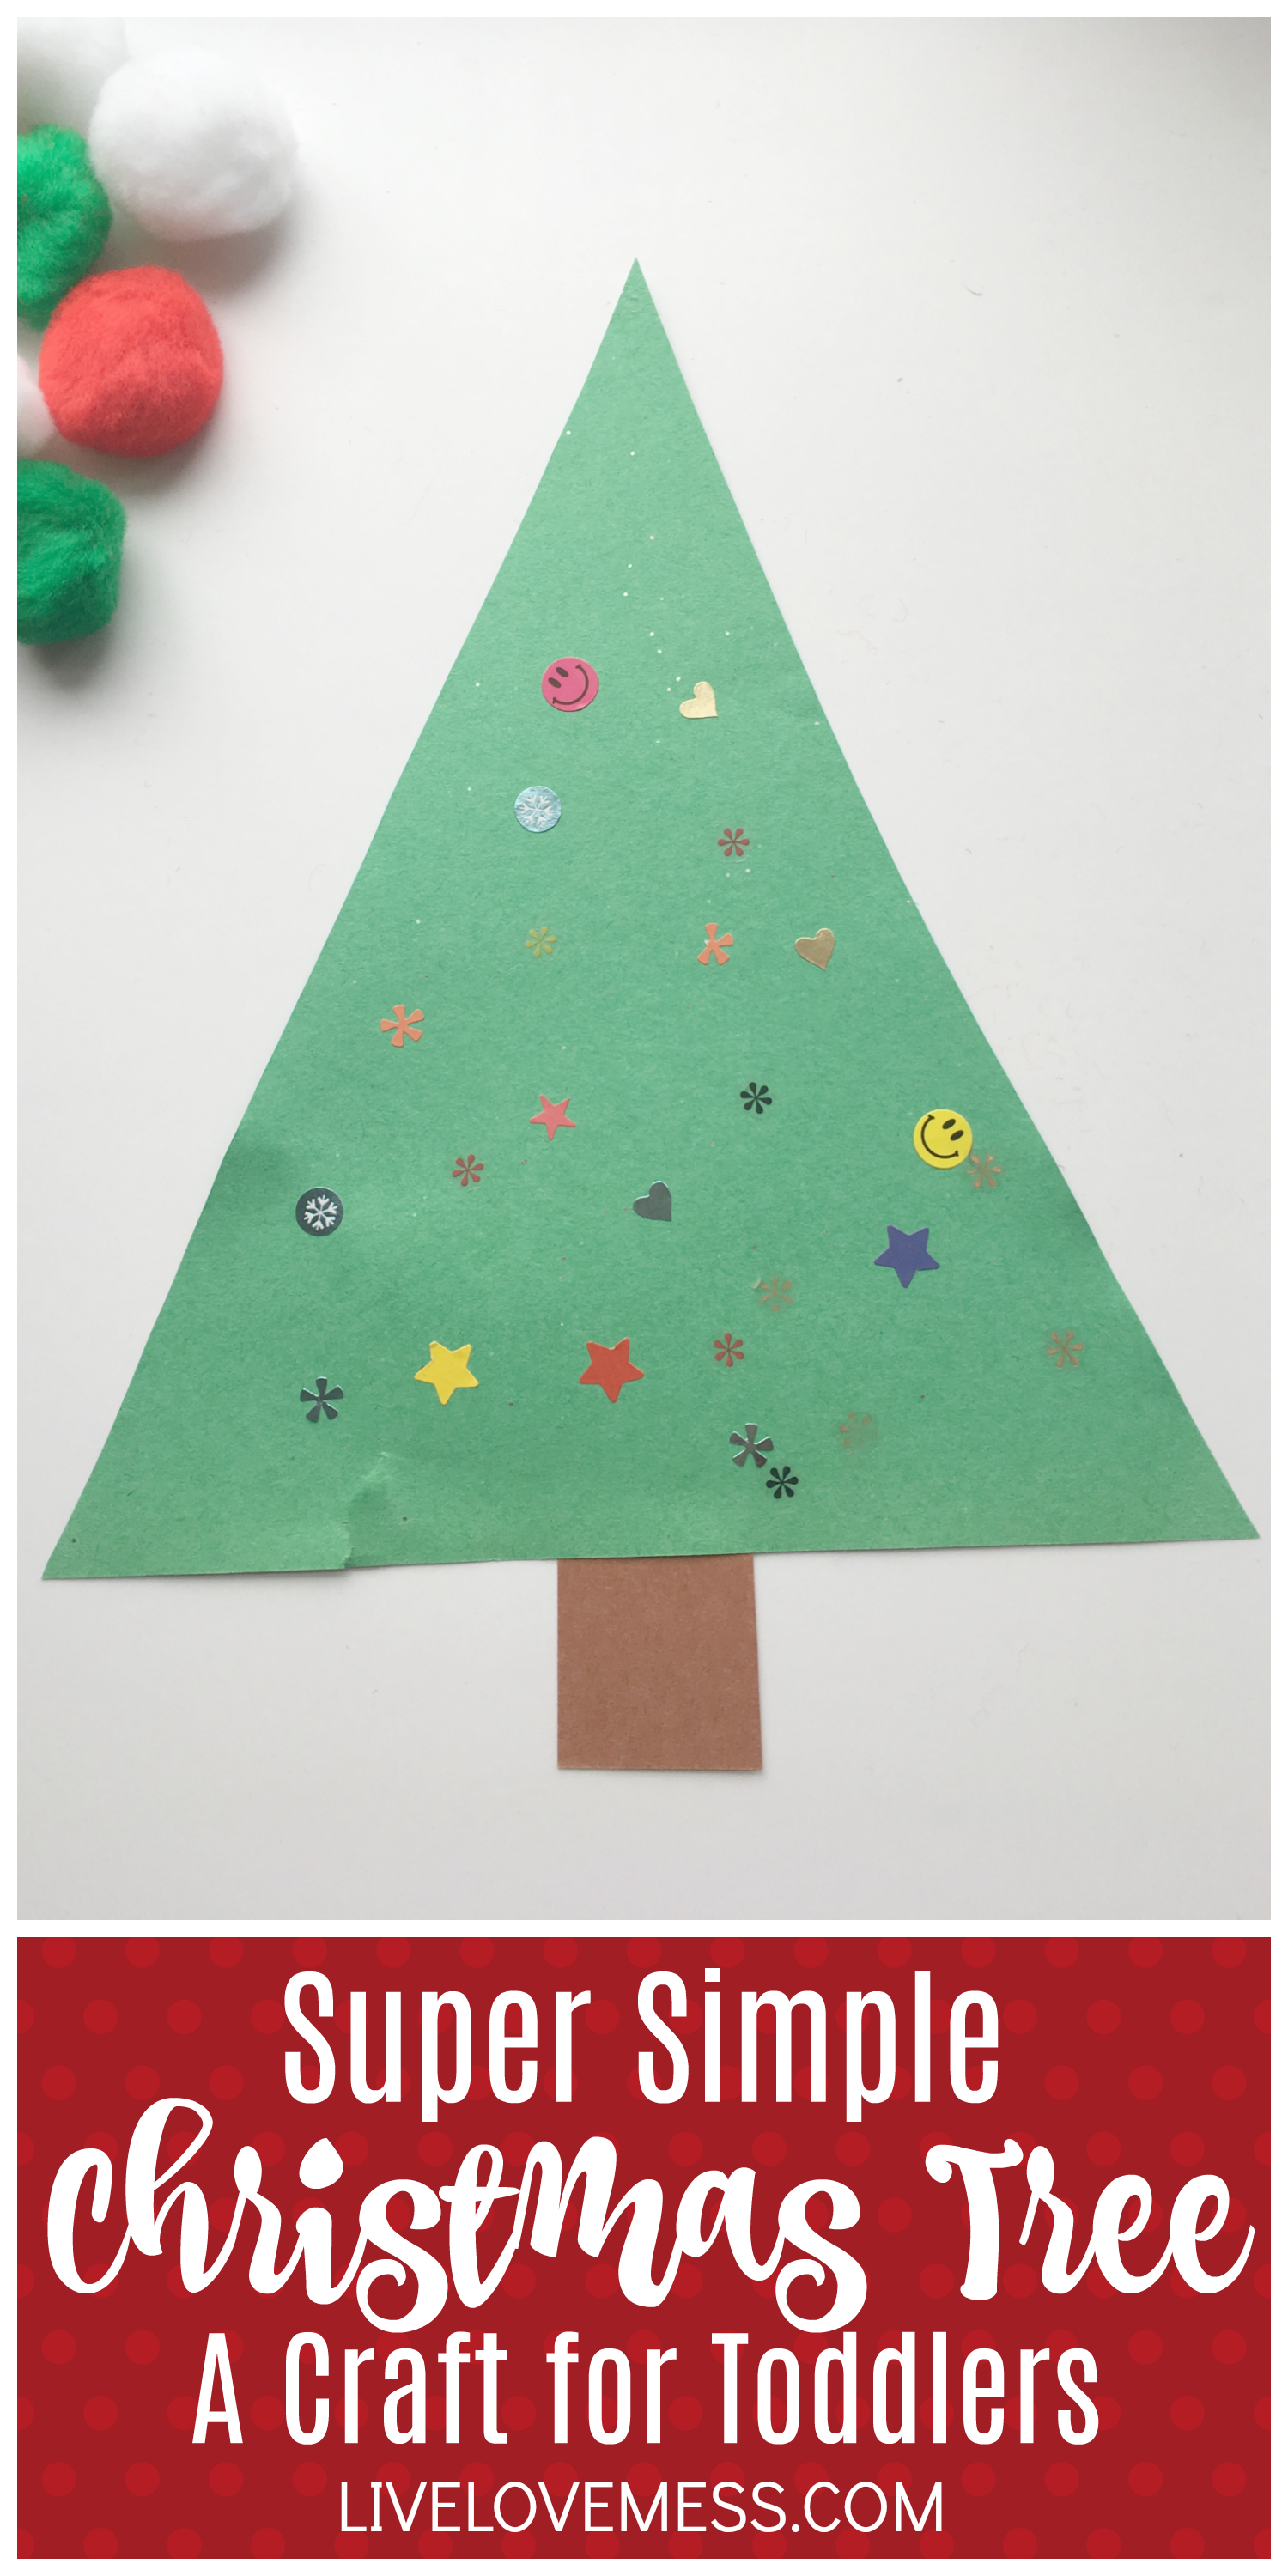 Super Simple Christmas Tree Craft For Toddlers Allie Kibler Christmas Crafts For Toddlers Toddler Crafts Winter Crafts For Kids